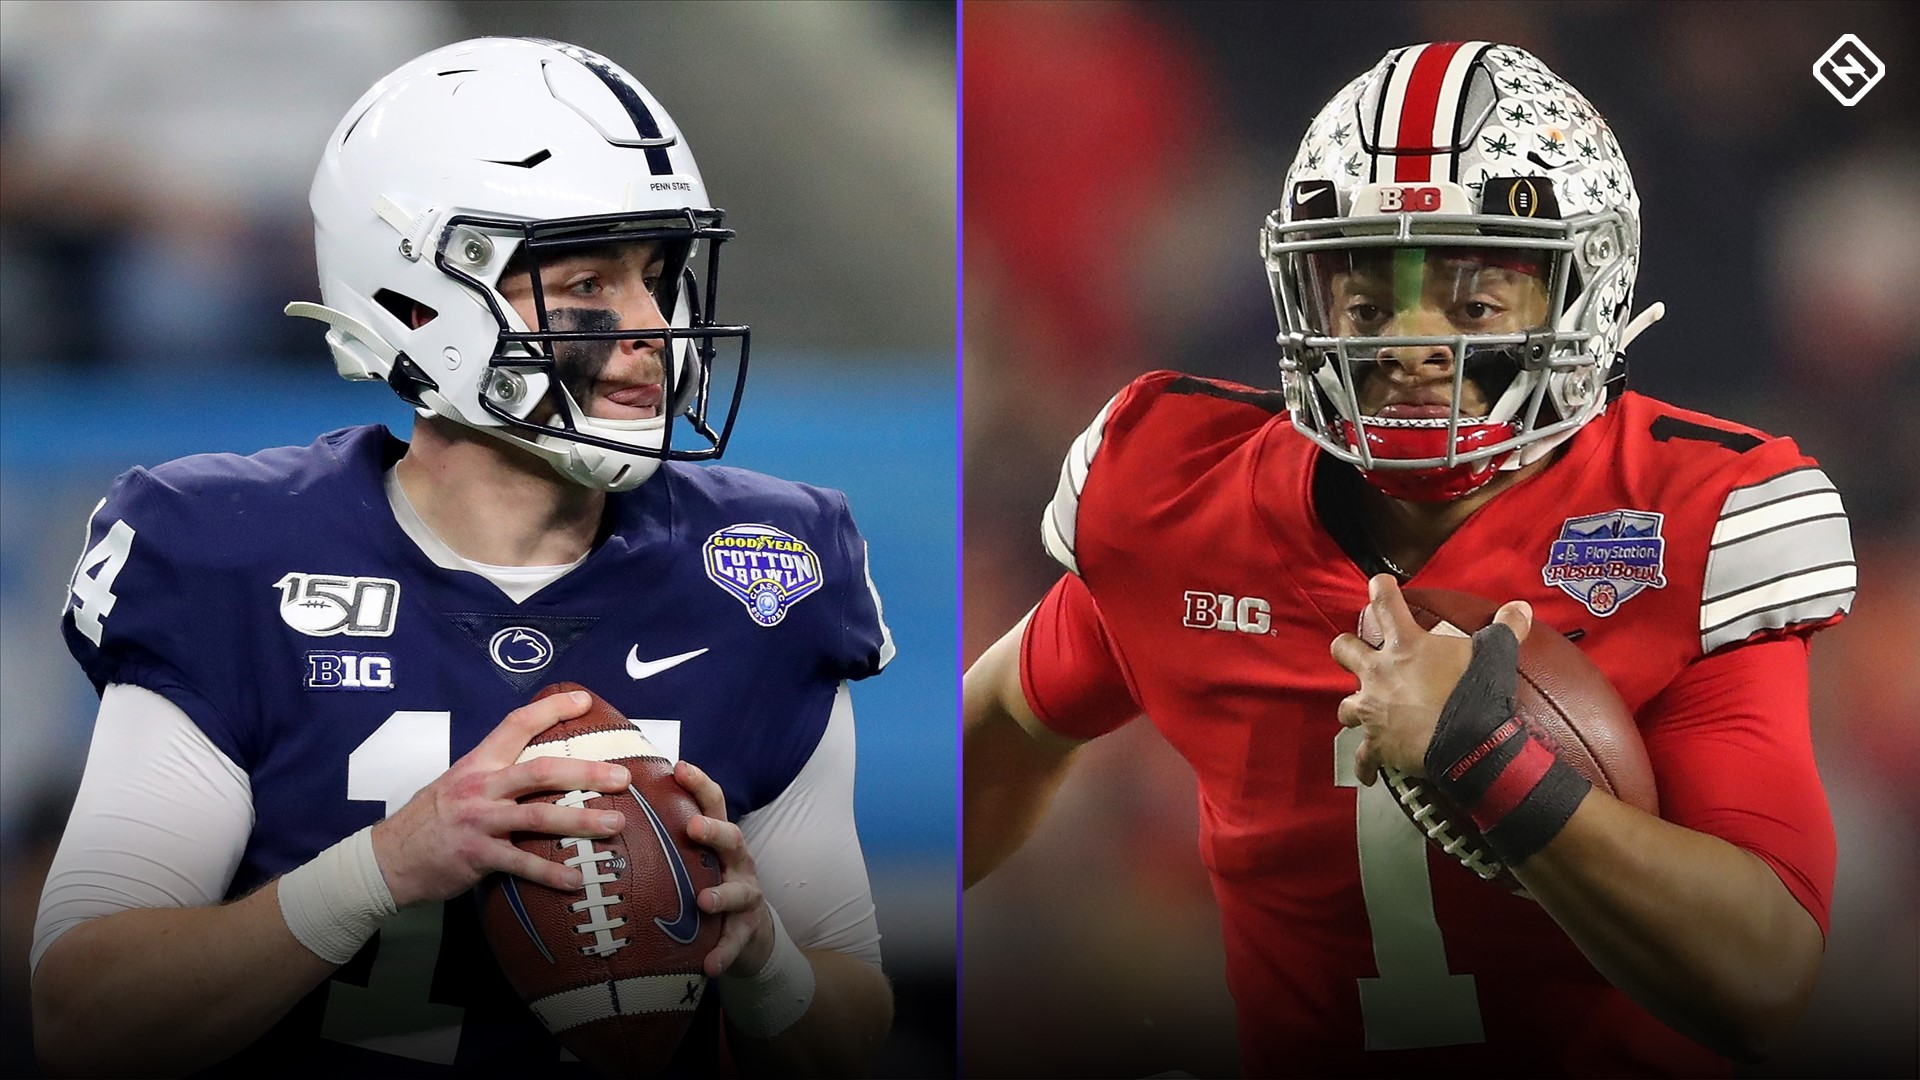 Ohio State vs. Penn State live score, updates, highlights from 2020 Big Ten rivalry game